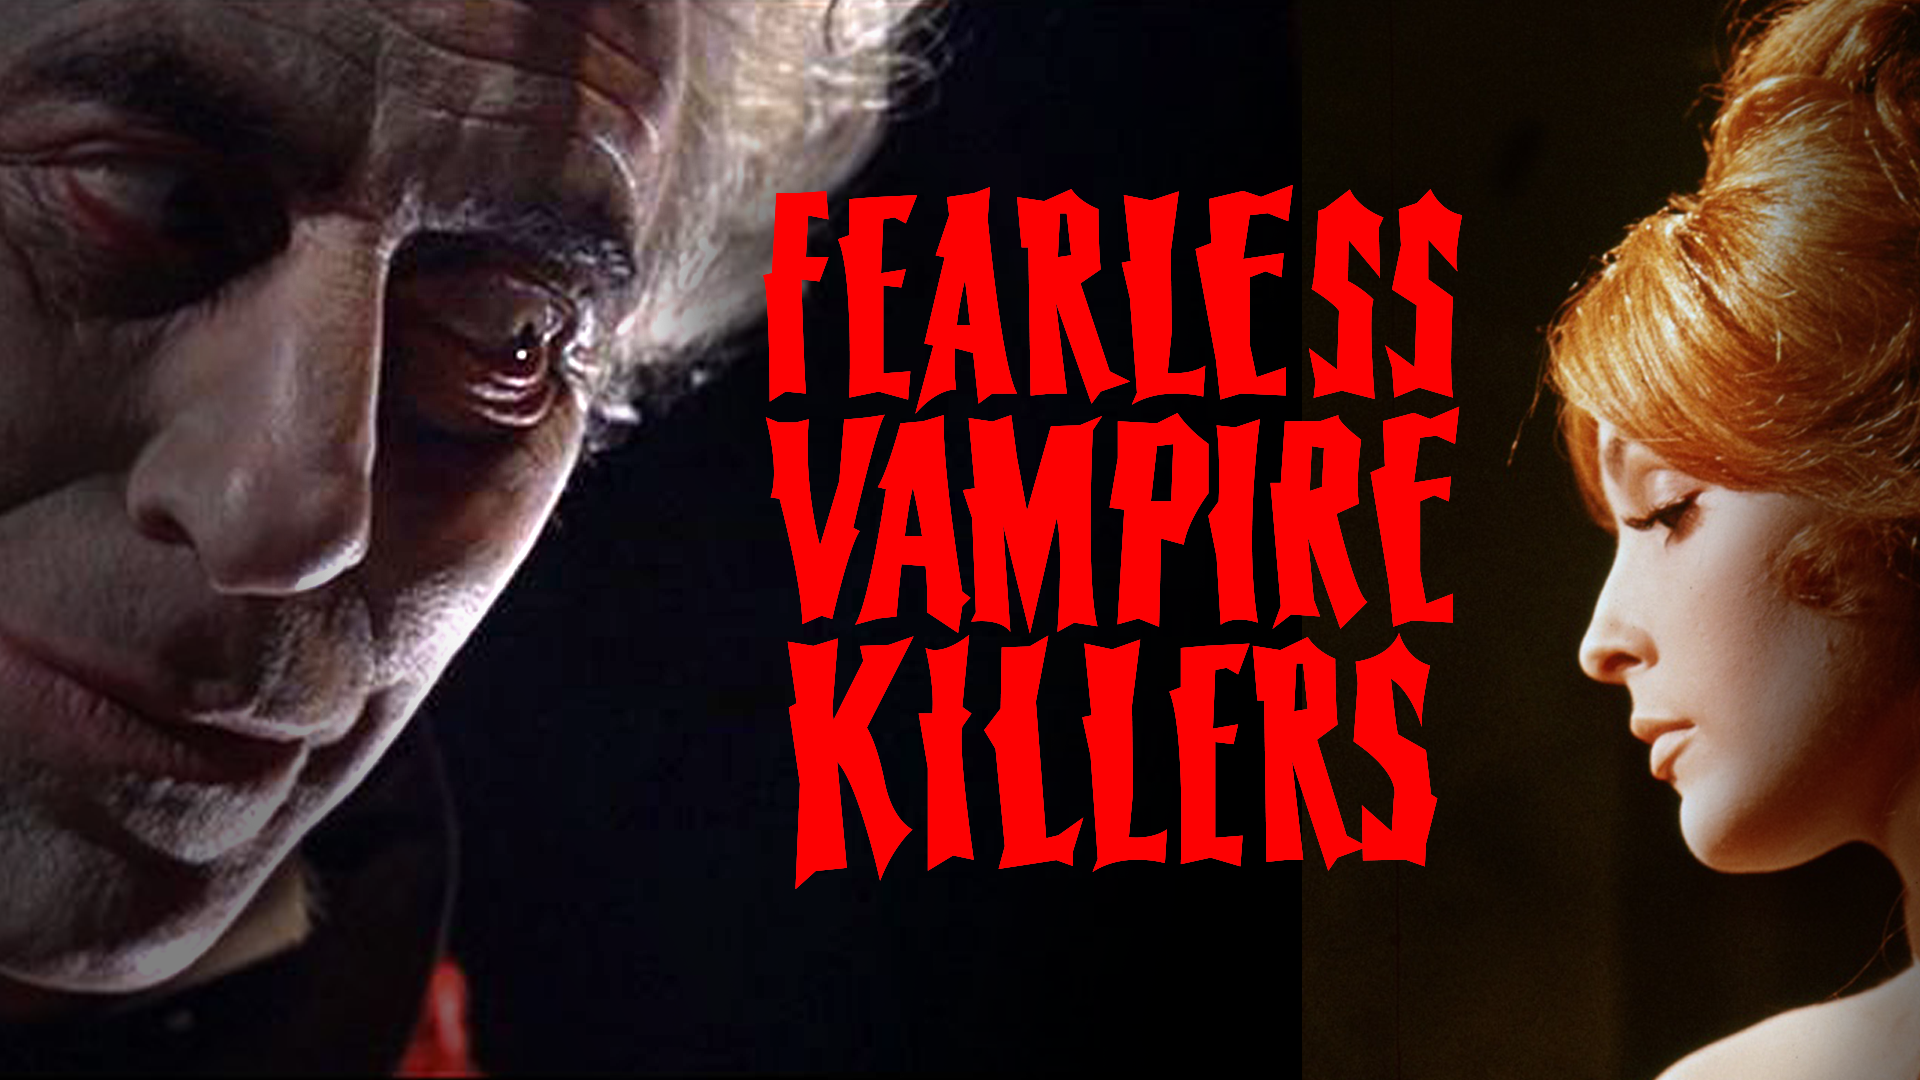 Download Fearless Vampire Killers cool free fonts